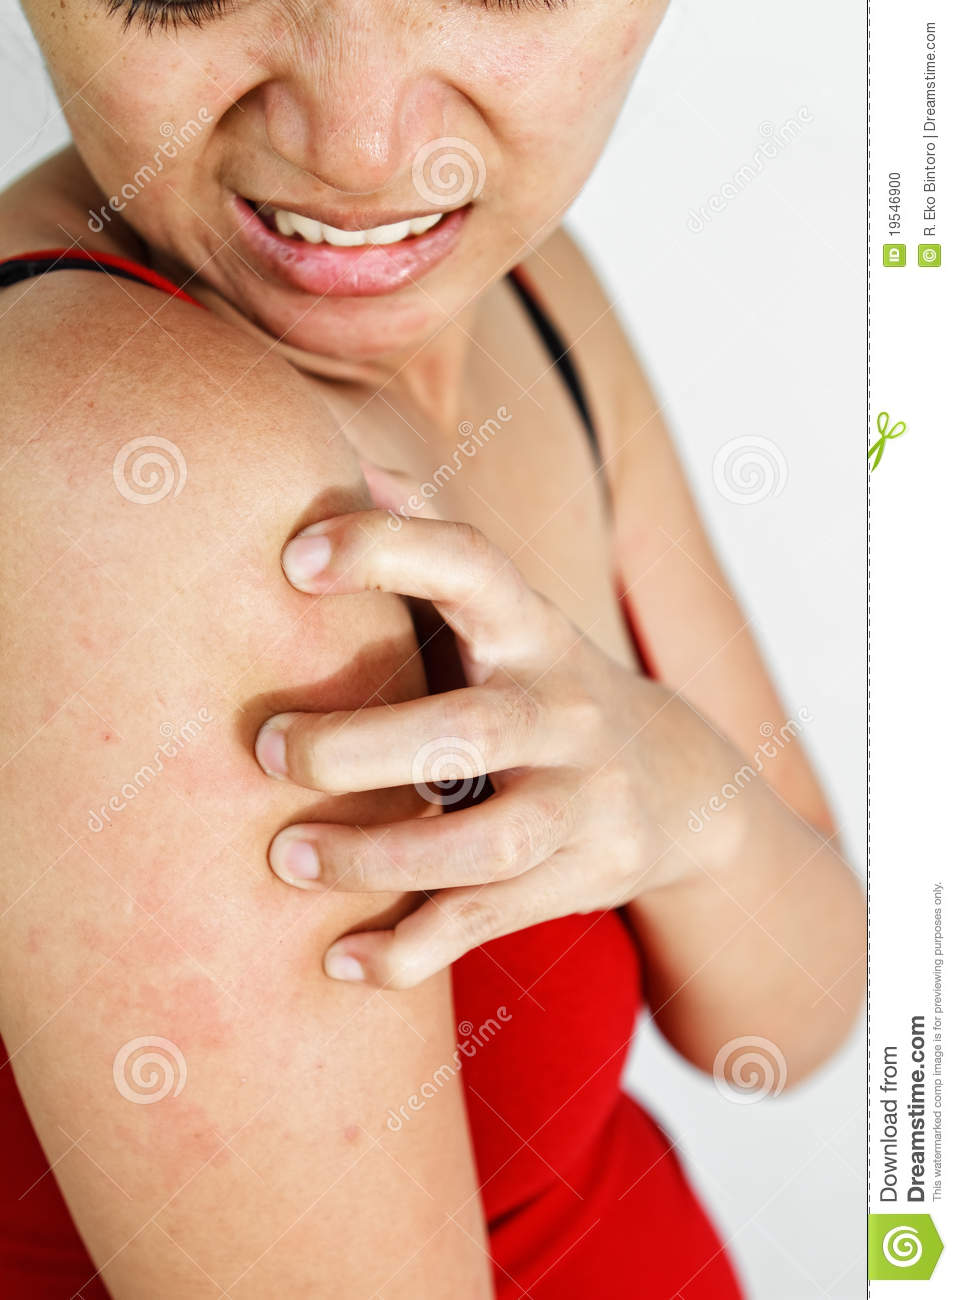 Woman Scratch Itchy Arm Stock Photo - Image: 19546900